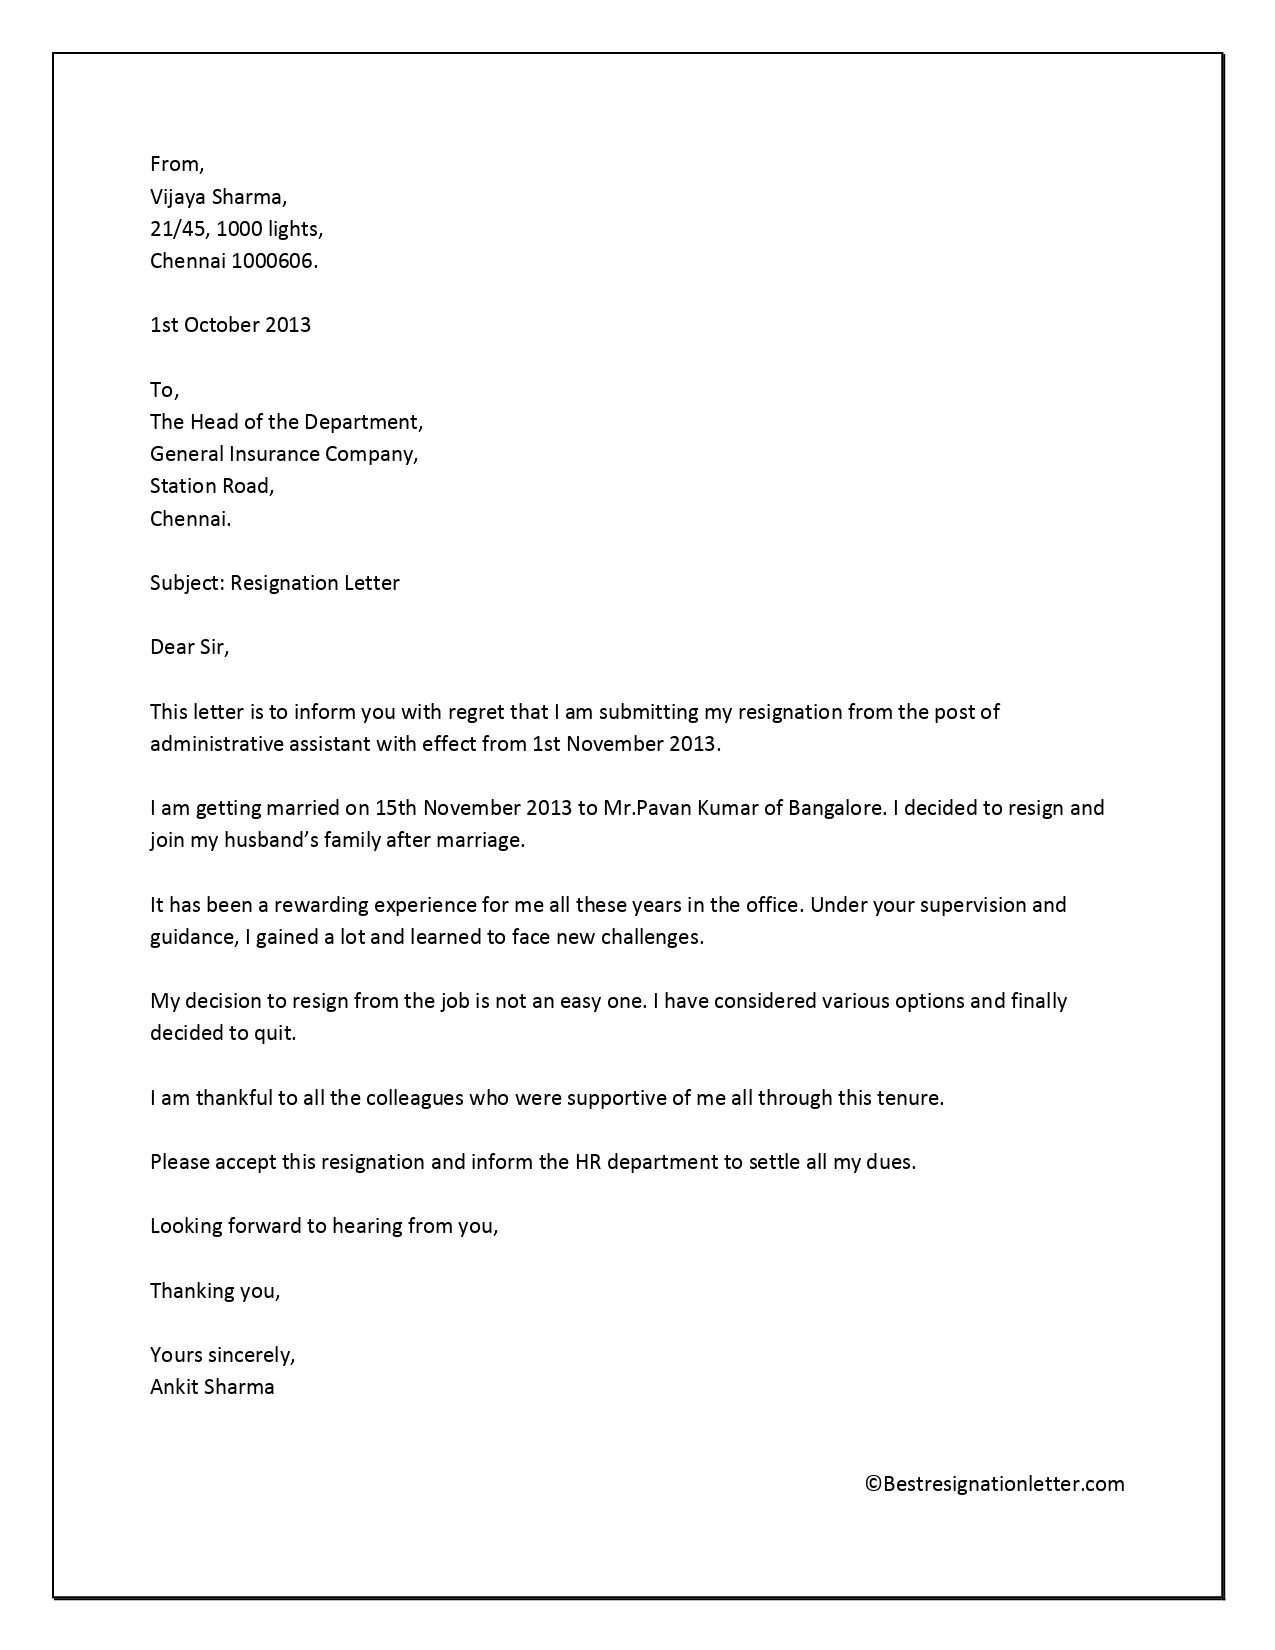 Pin on Resignation Letter